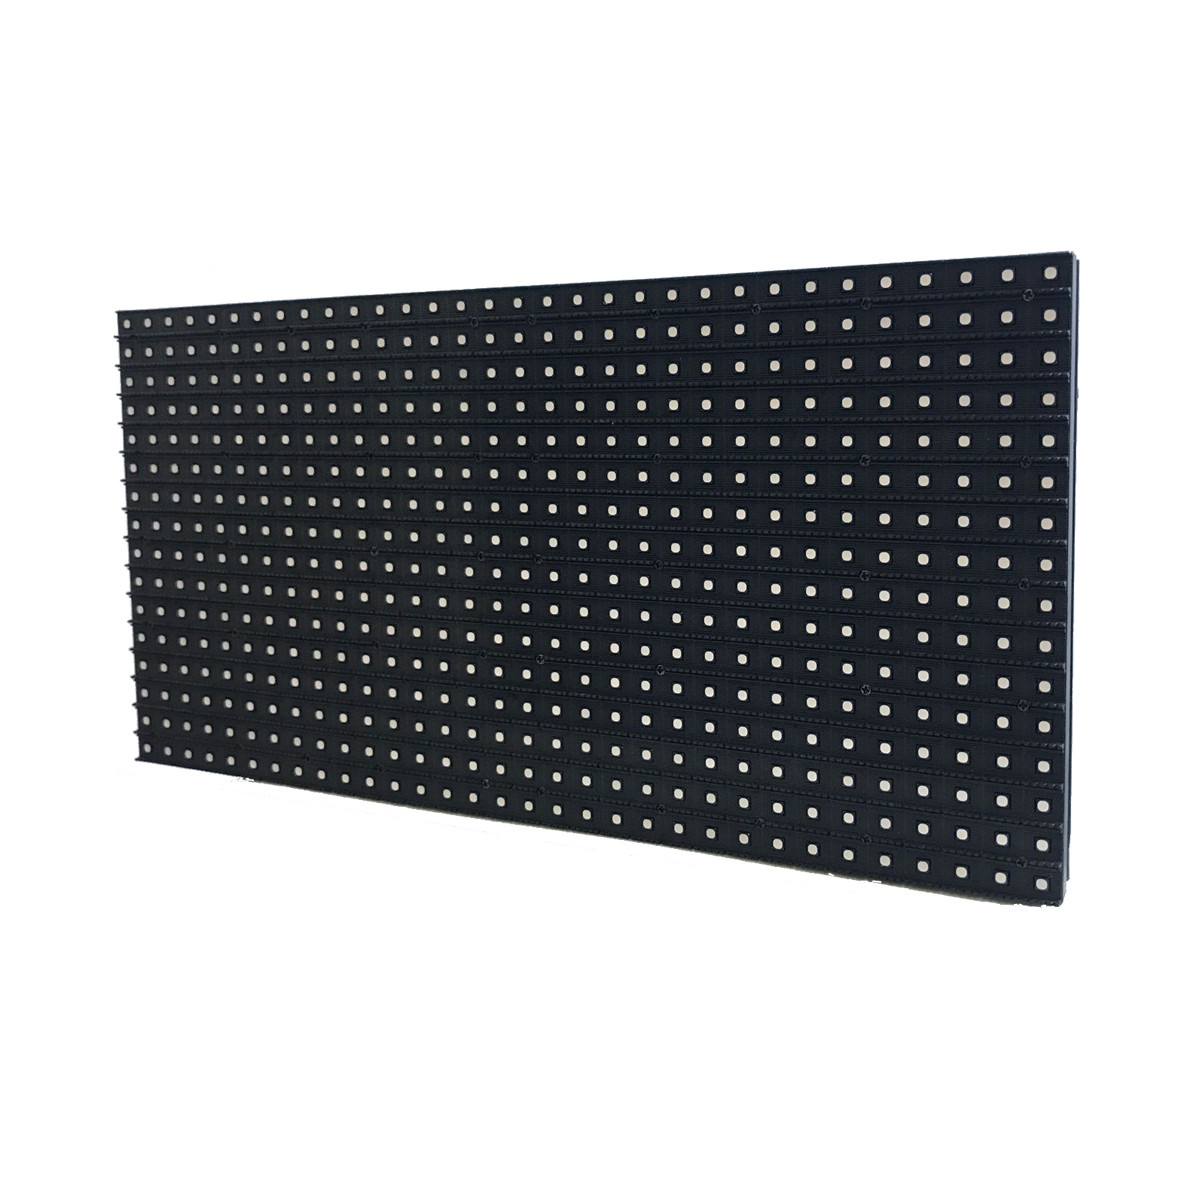 P10L Outdoor SMD LED Display Module 250*250mm SMD1921 5000cd/㎡ Brightness 1920Hz High Refresh